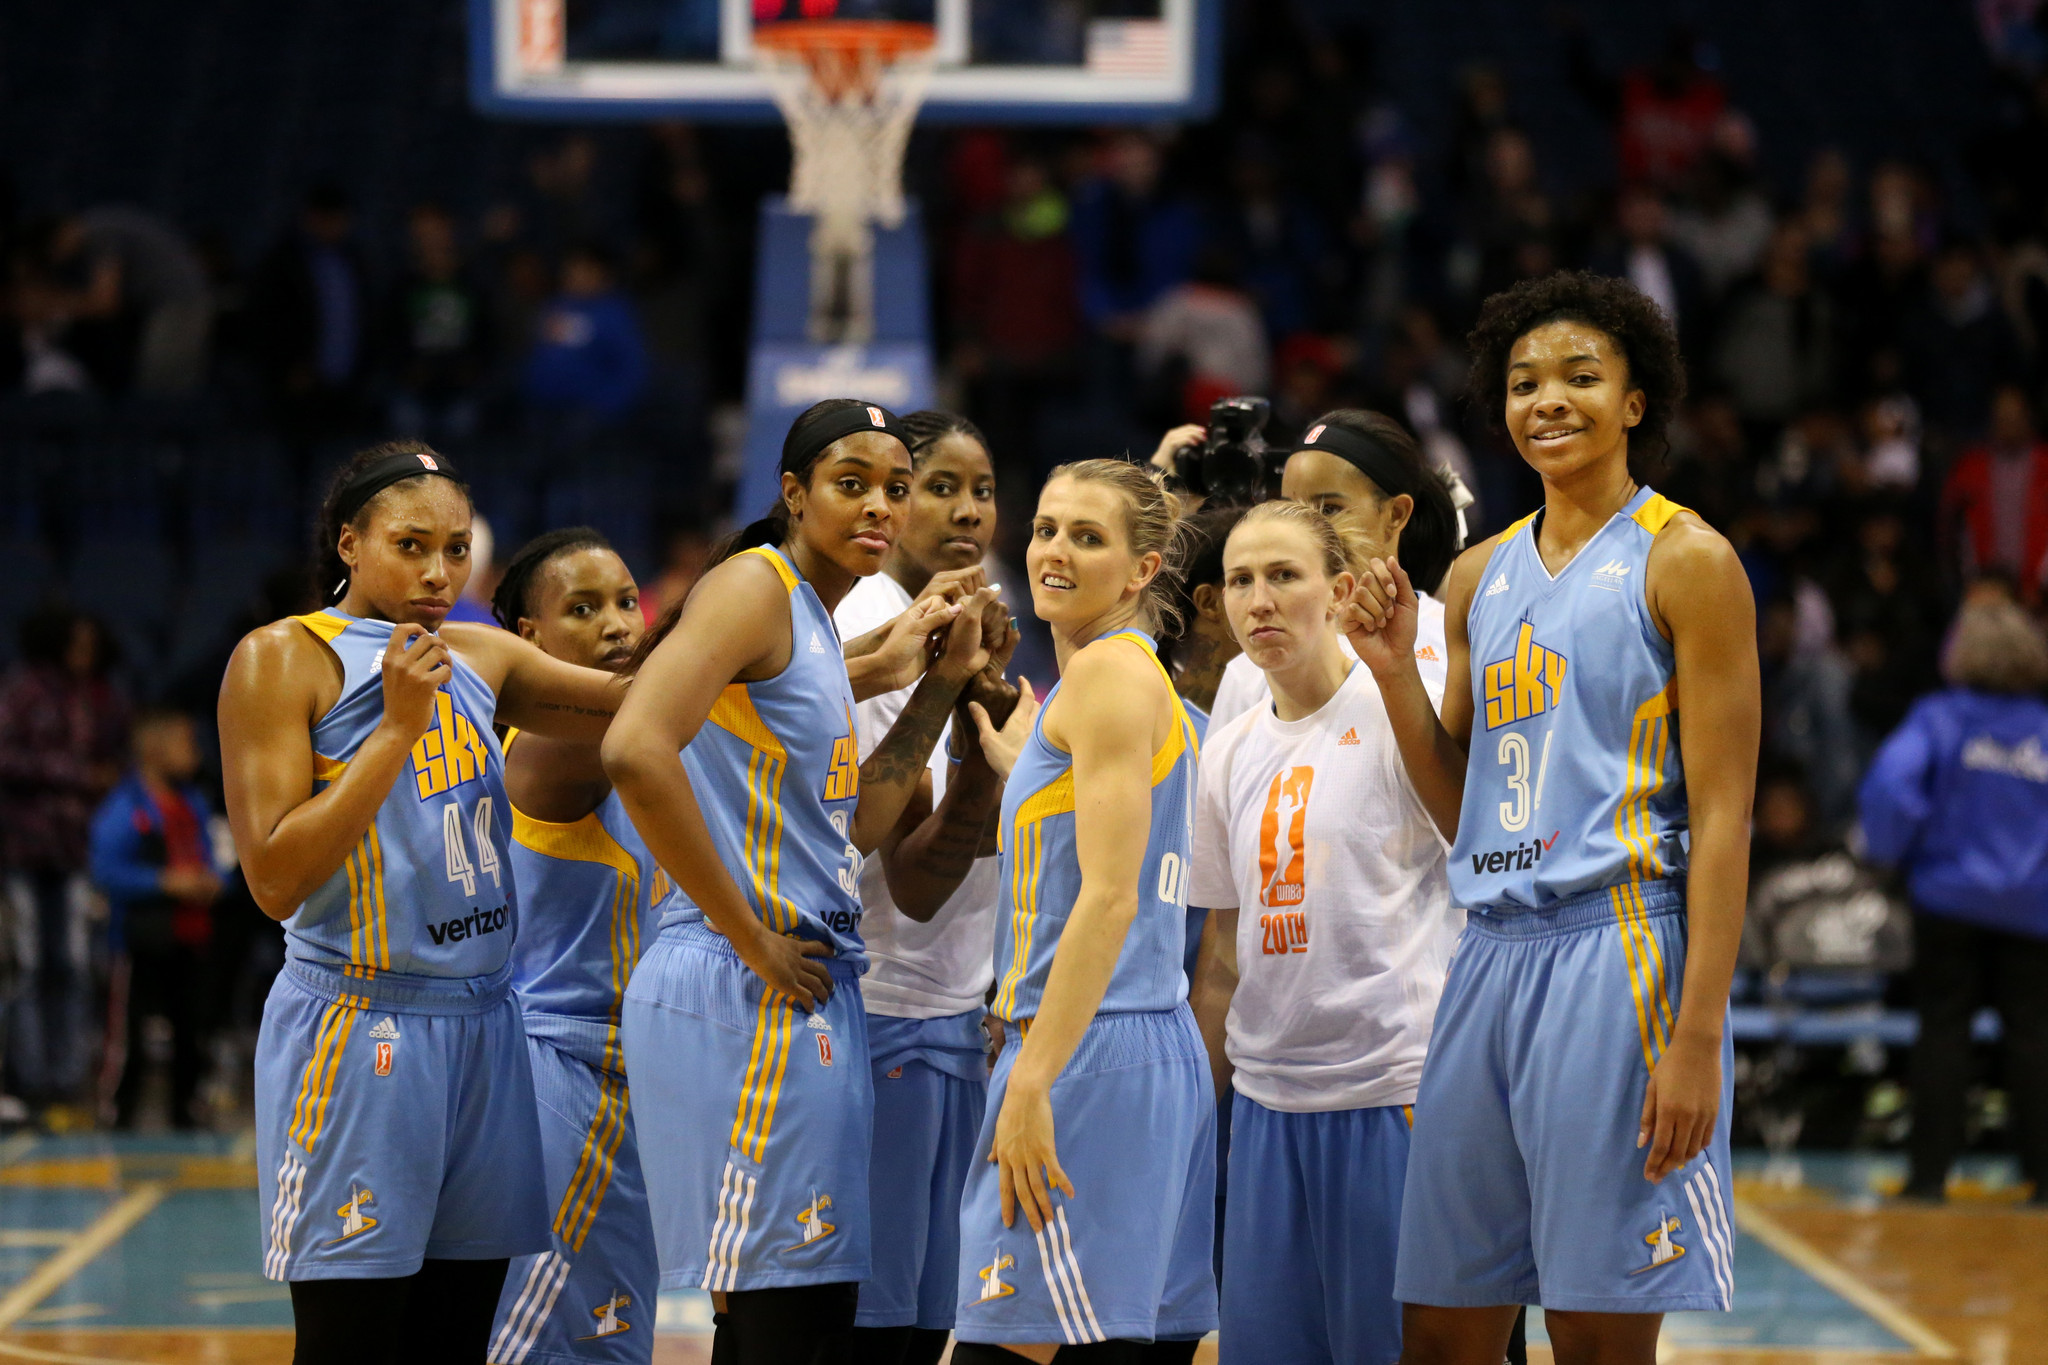 Elena Delle Donne out with illness, but Sky prevail over Sun in opener - Chicago Tribune